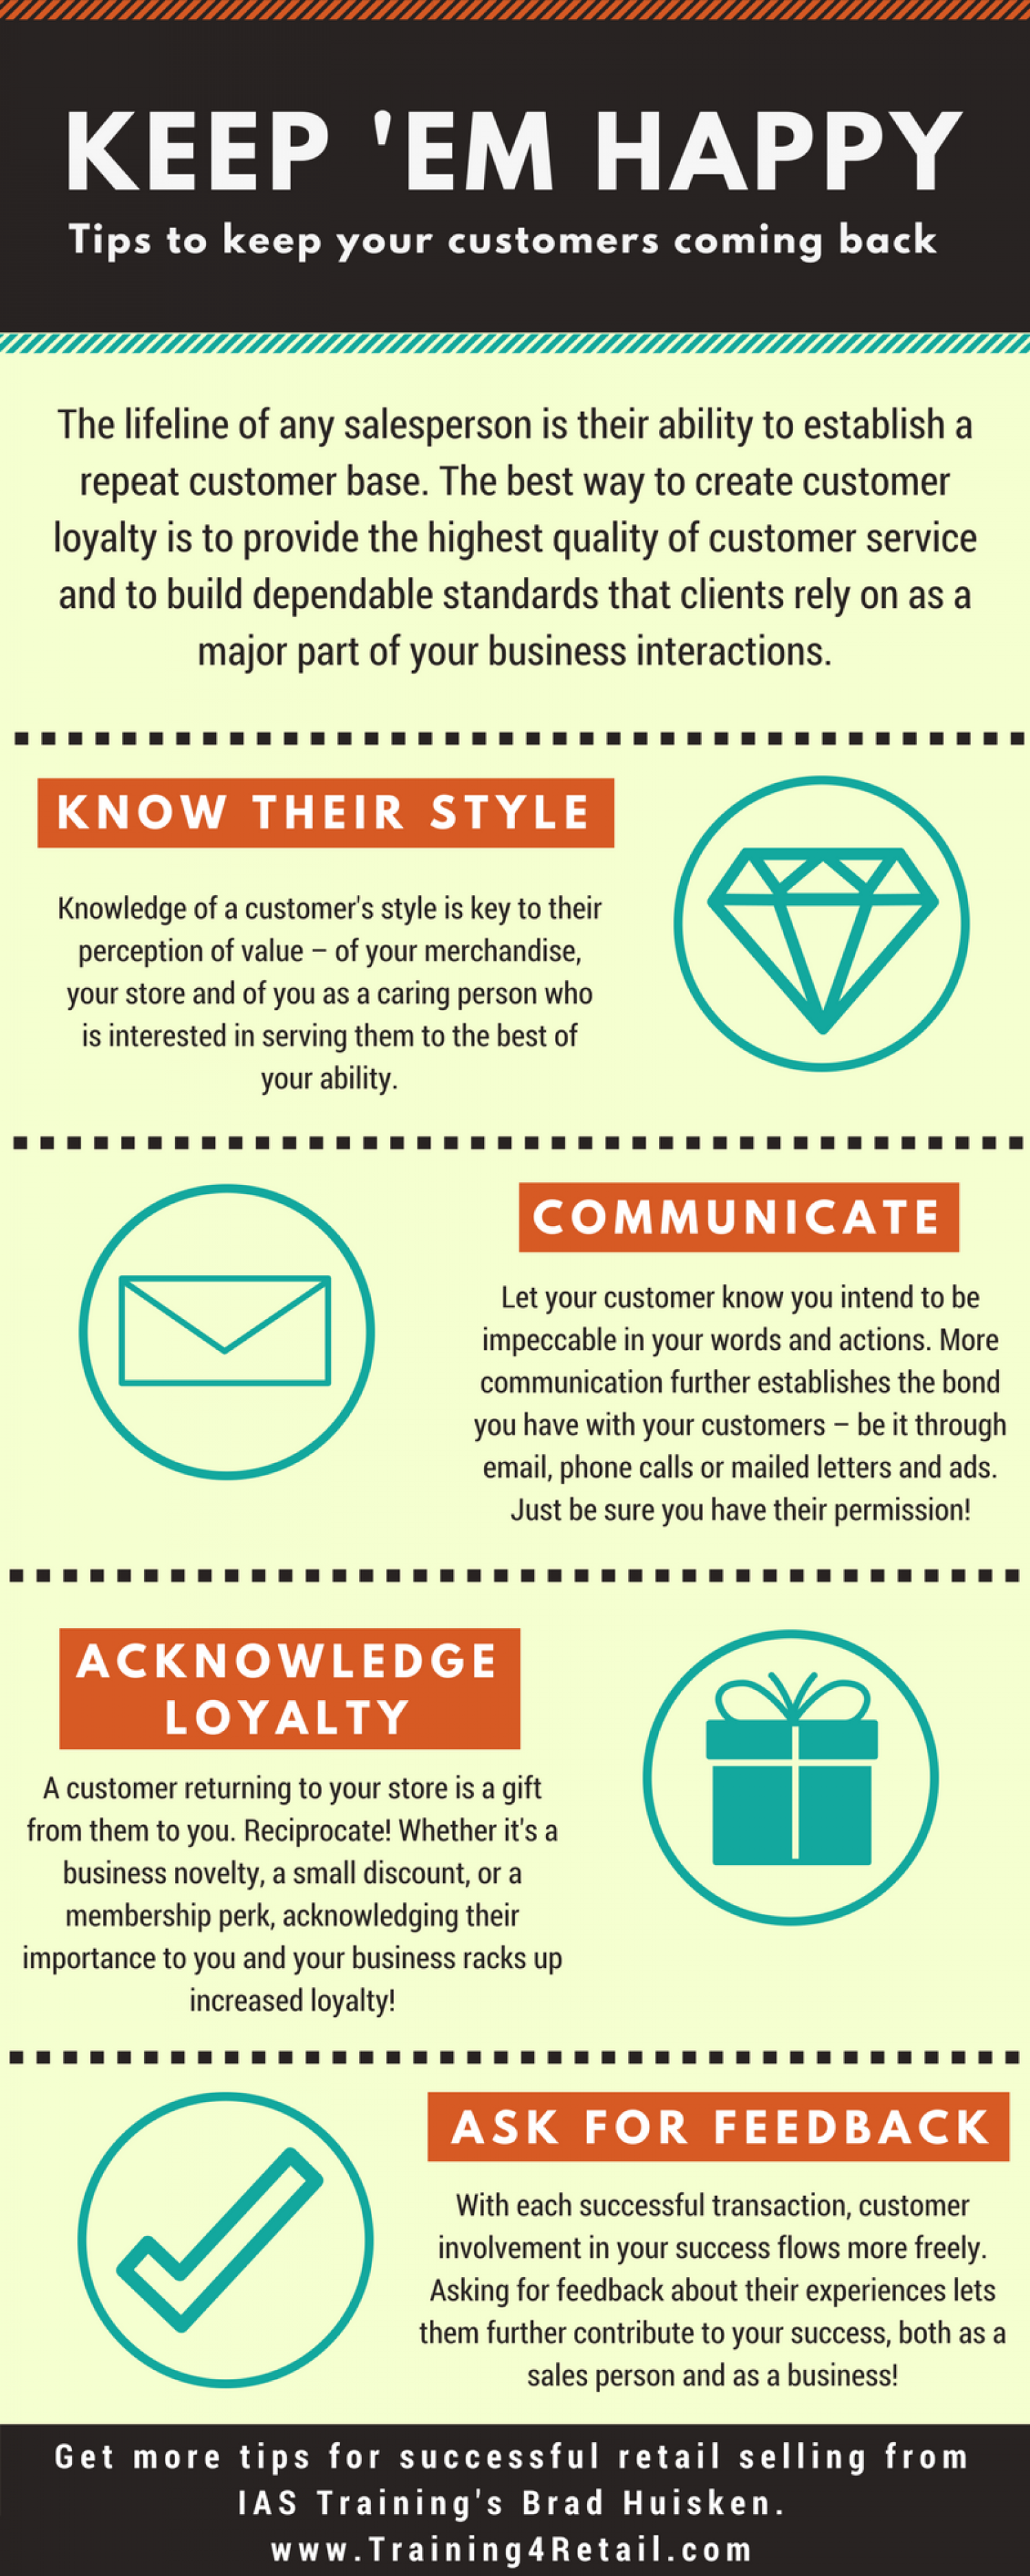 Tips to Build Customer Loyalty Infographic